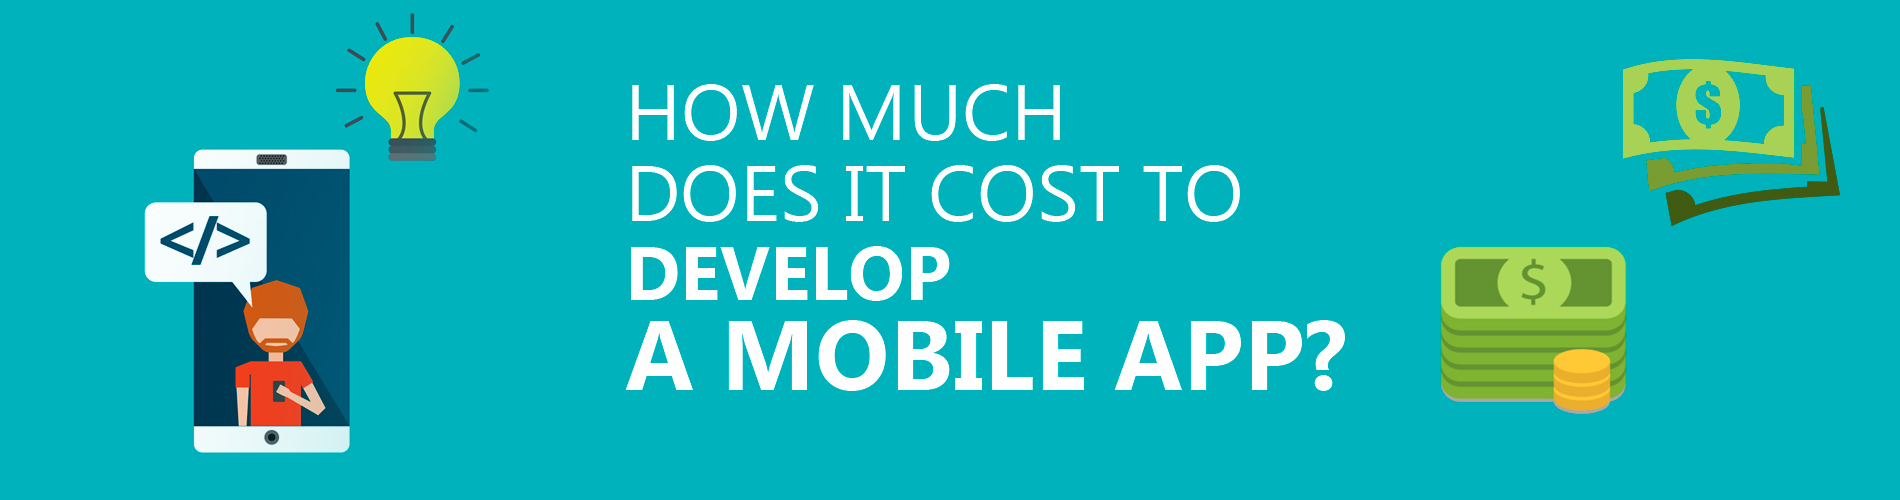 mobile app costs